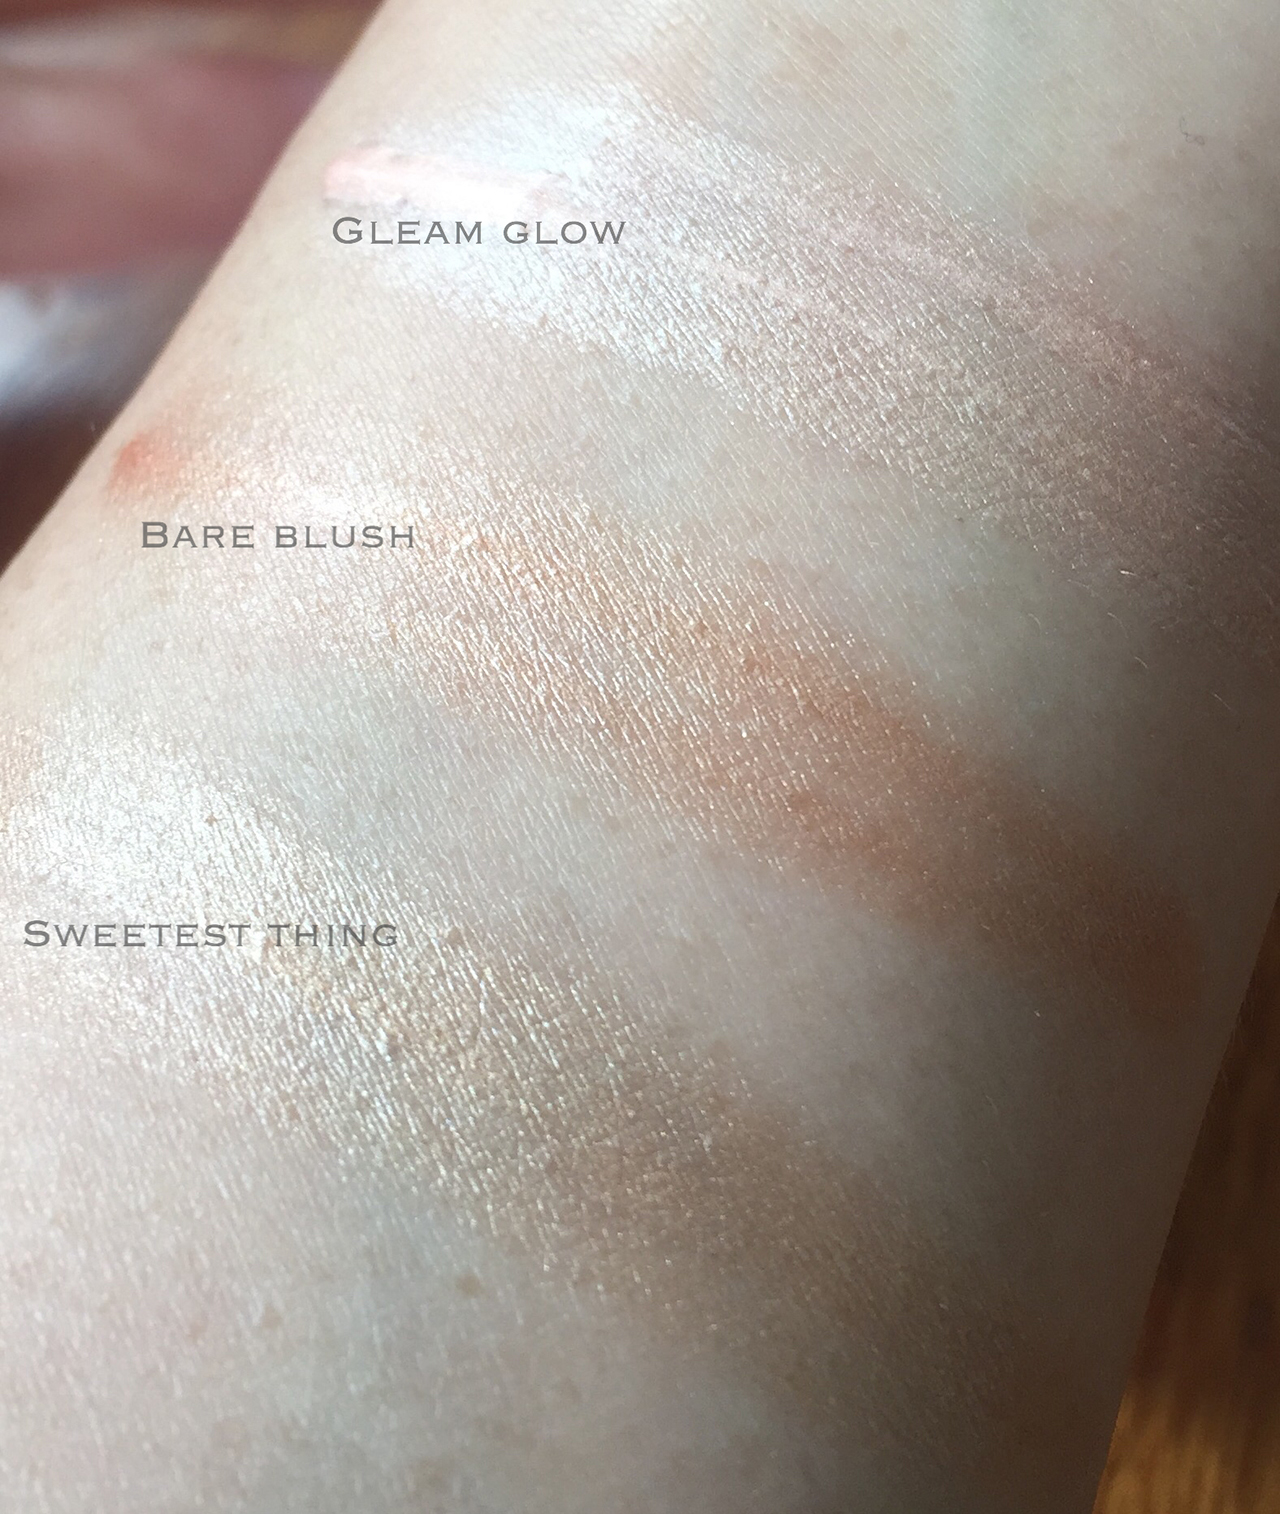 Estee Lauder Genuine Glow Eyelighting Creme for Eyes and Face swatches